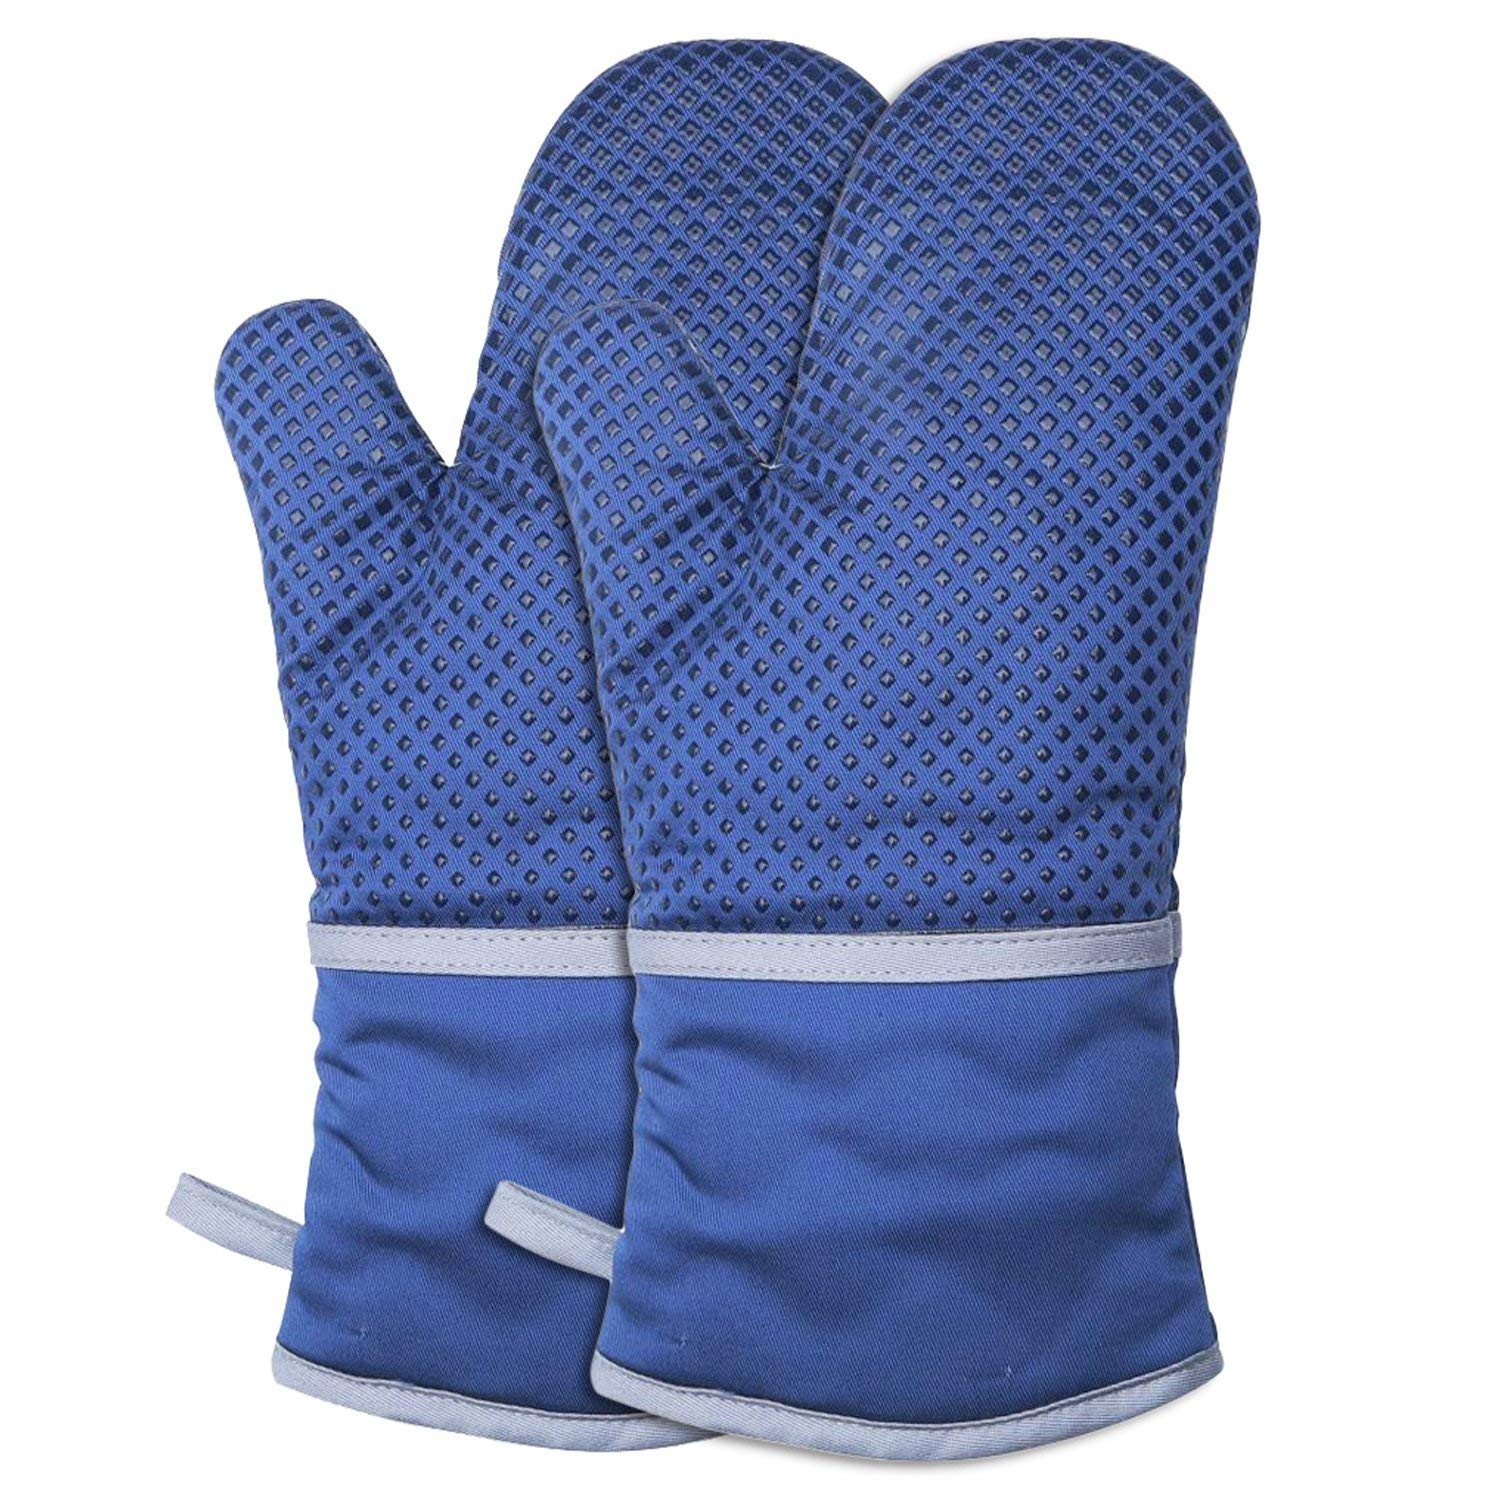 67i Oven Gloves Silicone Oven Mitts 572℉ Extreme Heat Resistant BBQ Gloves Grill Gloves, Anti-Slip Oven mitts 1 Pair of Heat Resistant Potholder Gloves Non-Slip Cotton Lining Kitchen Glove